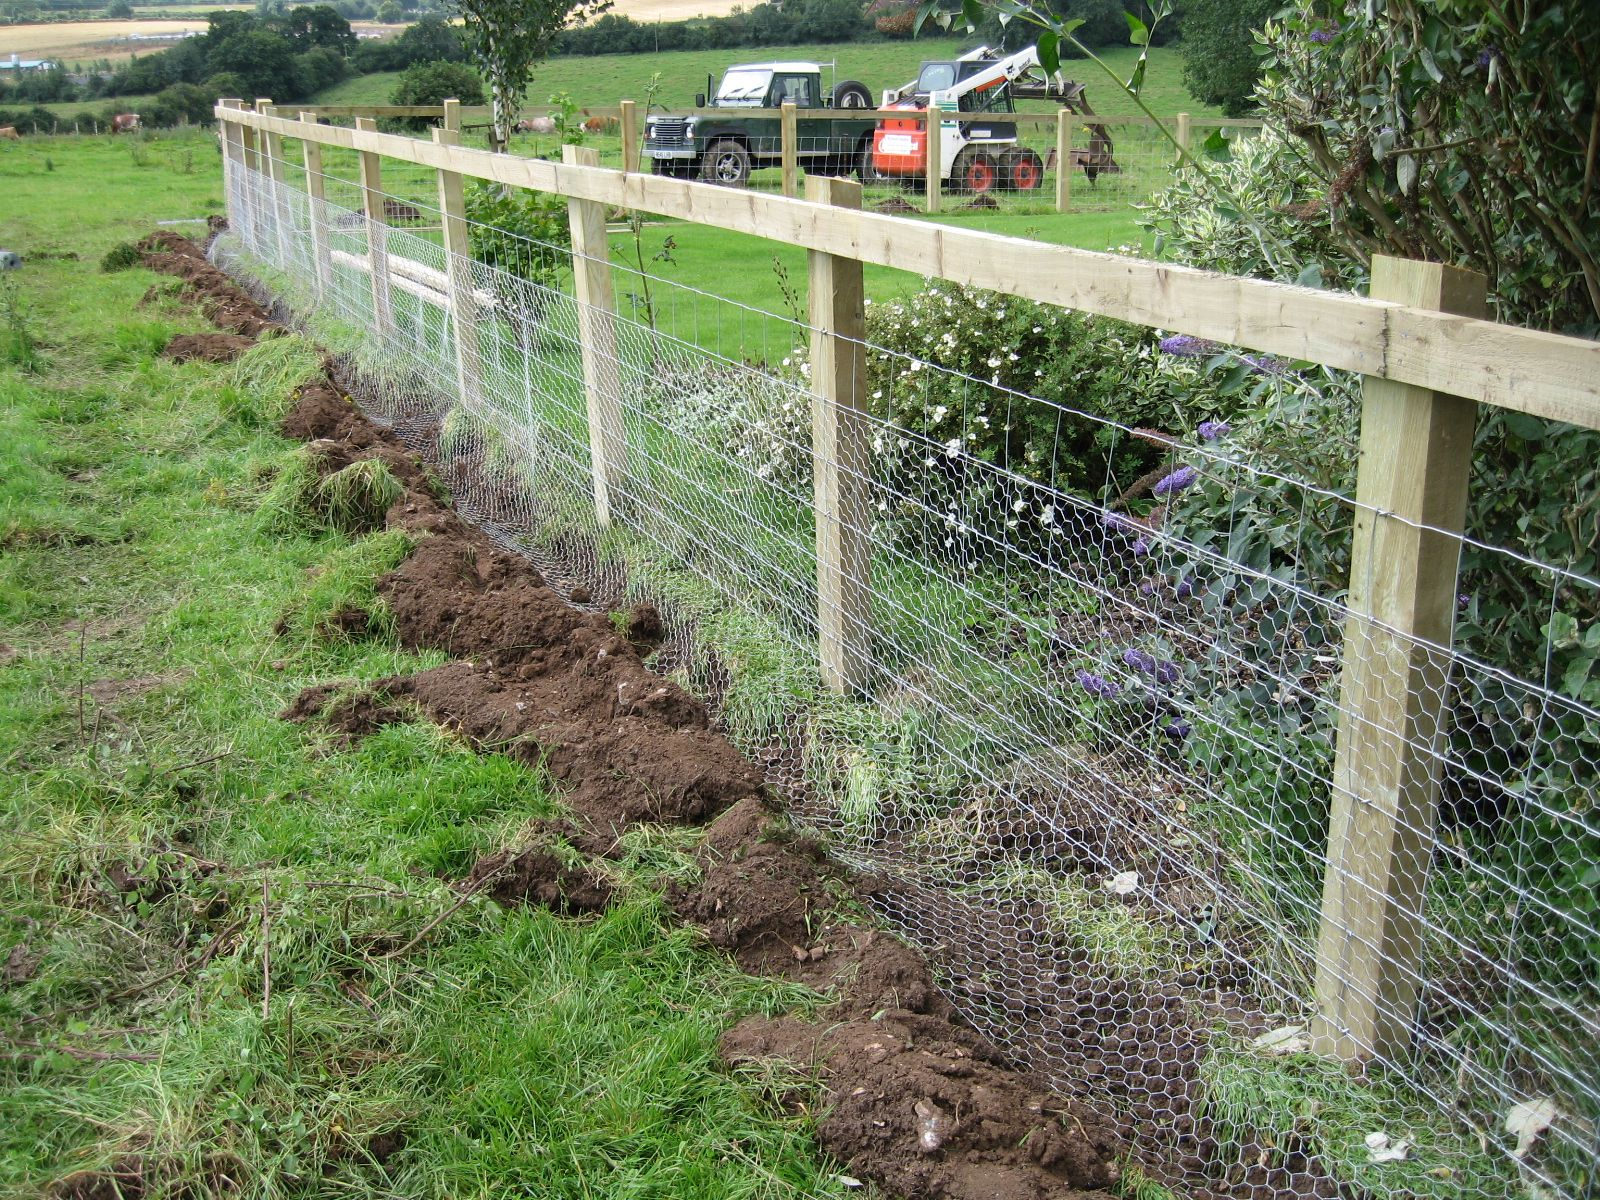 Garden fences supreme an article referring to necessary garden flowers pinterest garden - Deer proof vegetable garden ideas ...